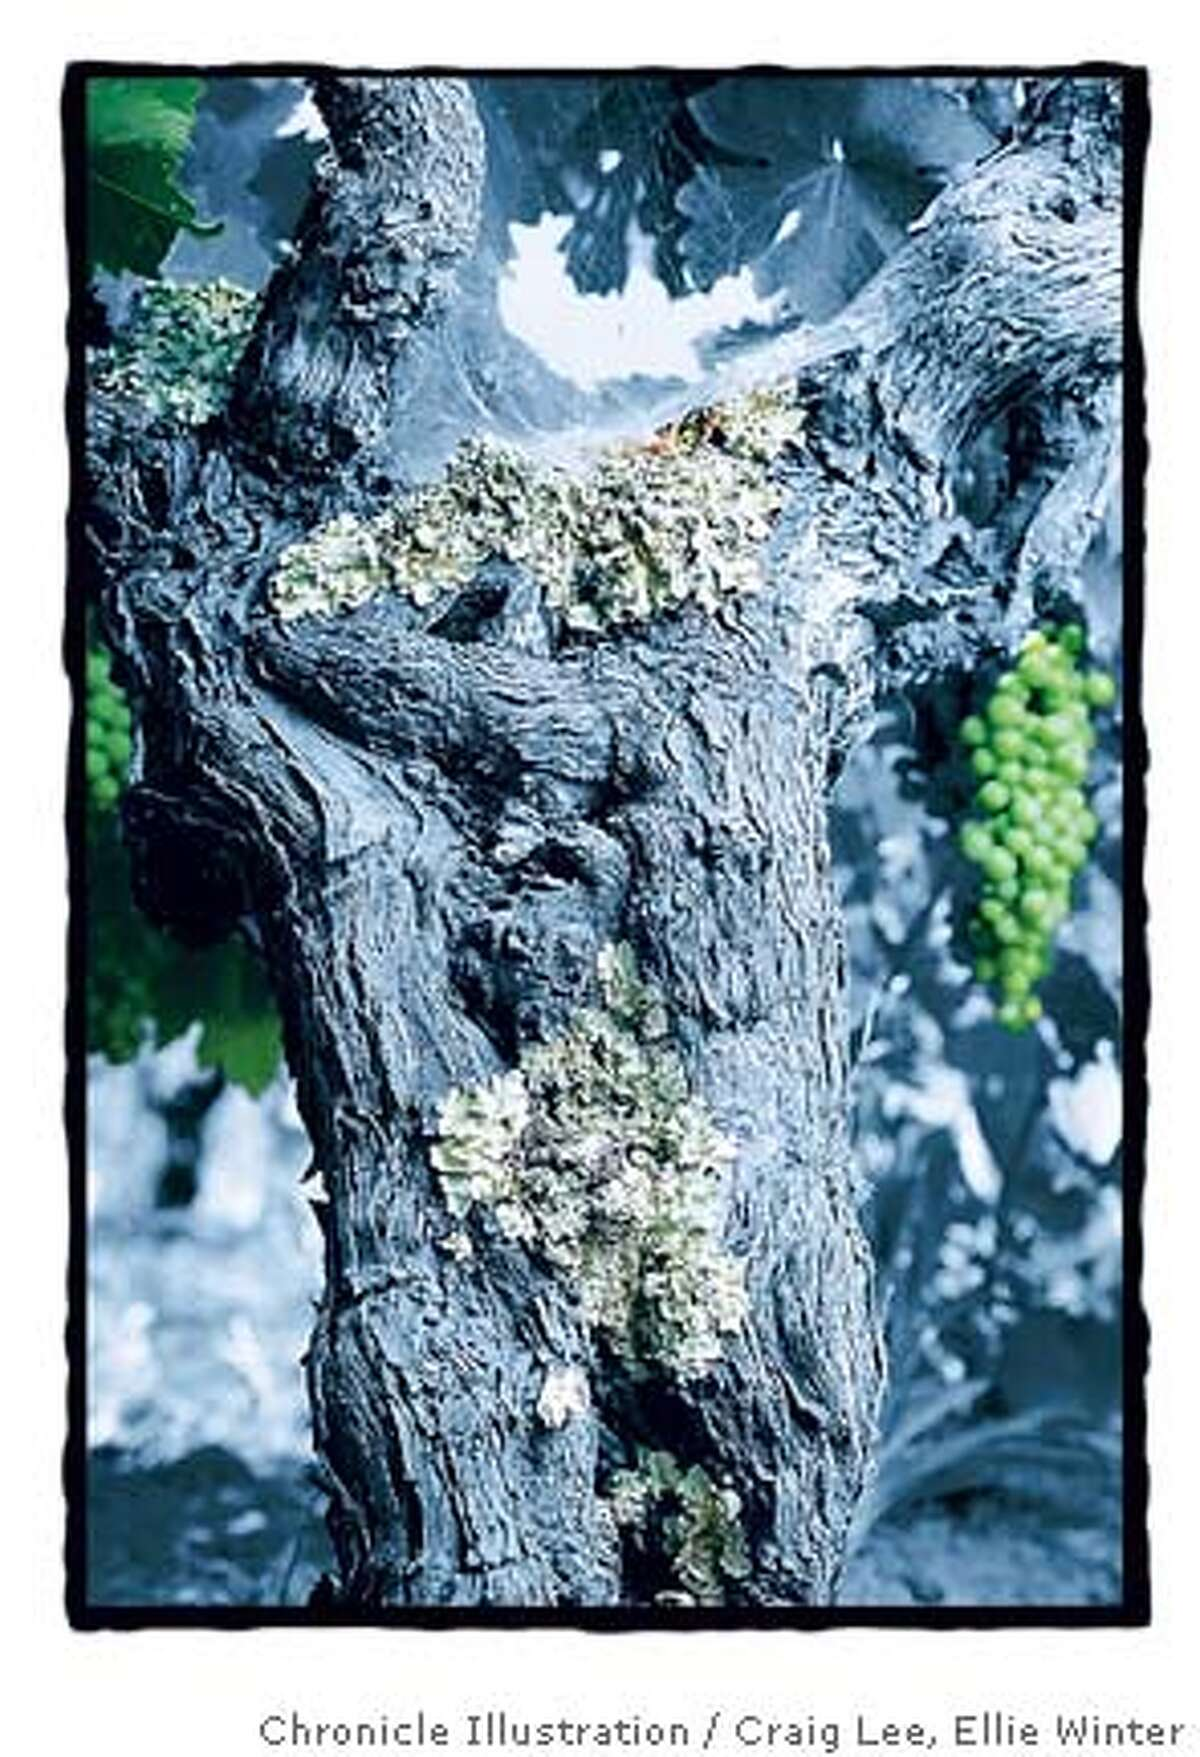 OLDVINE28_660_cl.JPG_Photo of old Zinfandel vines at Old Hill Ranch, Will Bucklin is the vineyard manager. Close-up detail photo to show the gnarliness of these old vines._Event on 7/22/05 in Sonoma.__Craig Lee / The Chronicle__MANDATORY CREDIT FOR PHOTOG AND SF CHRONICLE/ -MAGS OUT